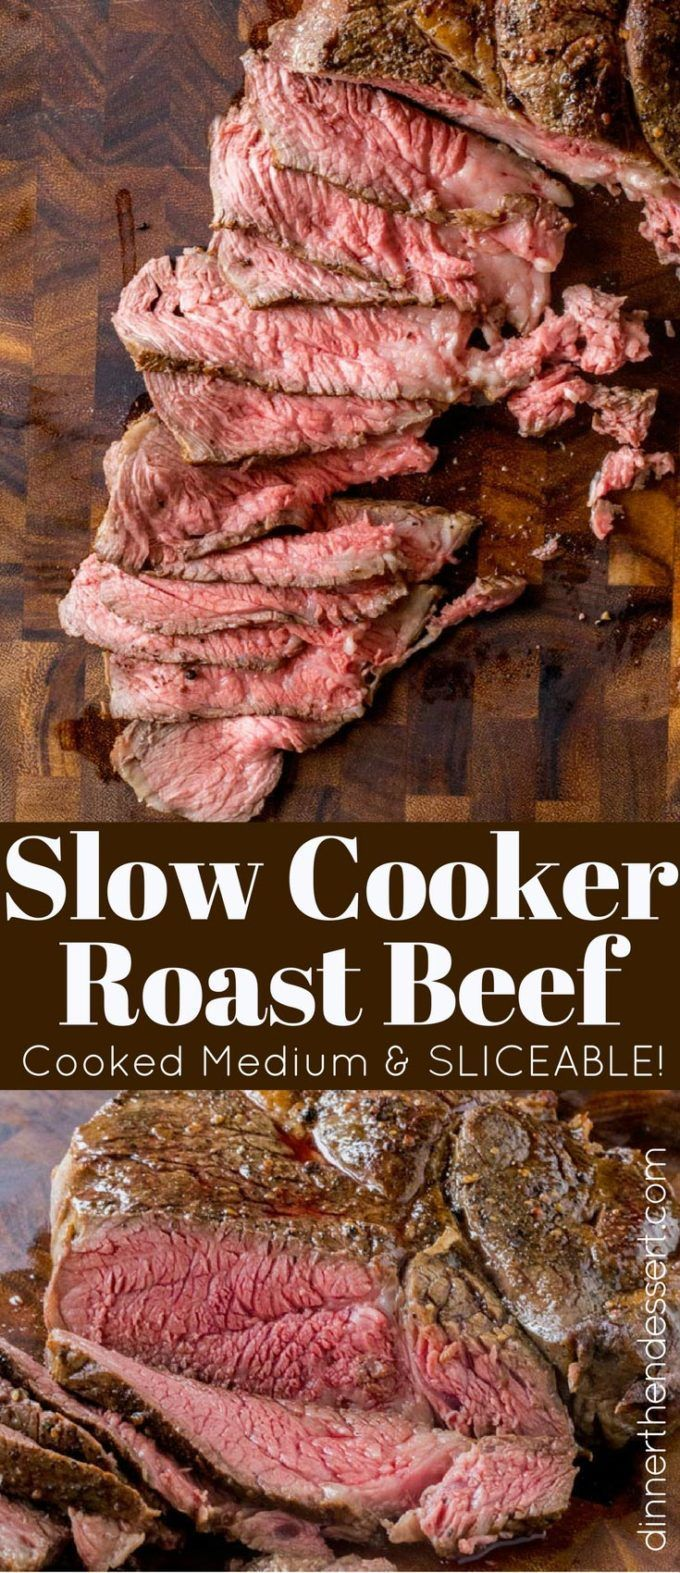 Slow Cooker Roast Beef That You Can Slice Into Tender Slices Cooked To A Perfect Medium Tempe Slow Cooker Roast Beef Slow Cooker Roast Slow Cooker Recipes Beef